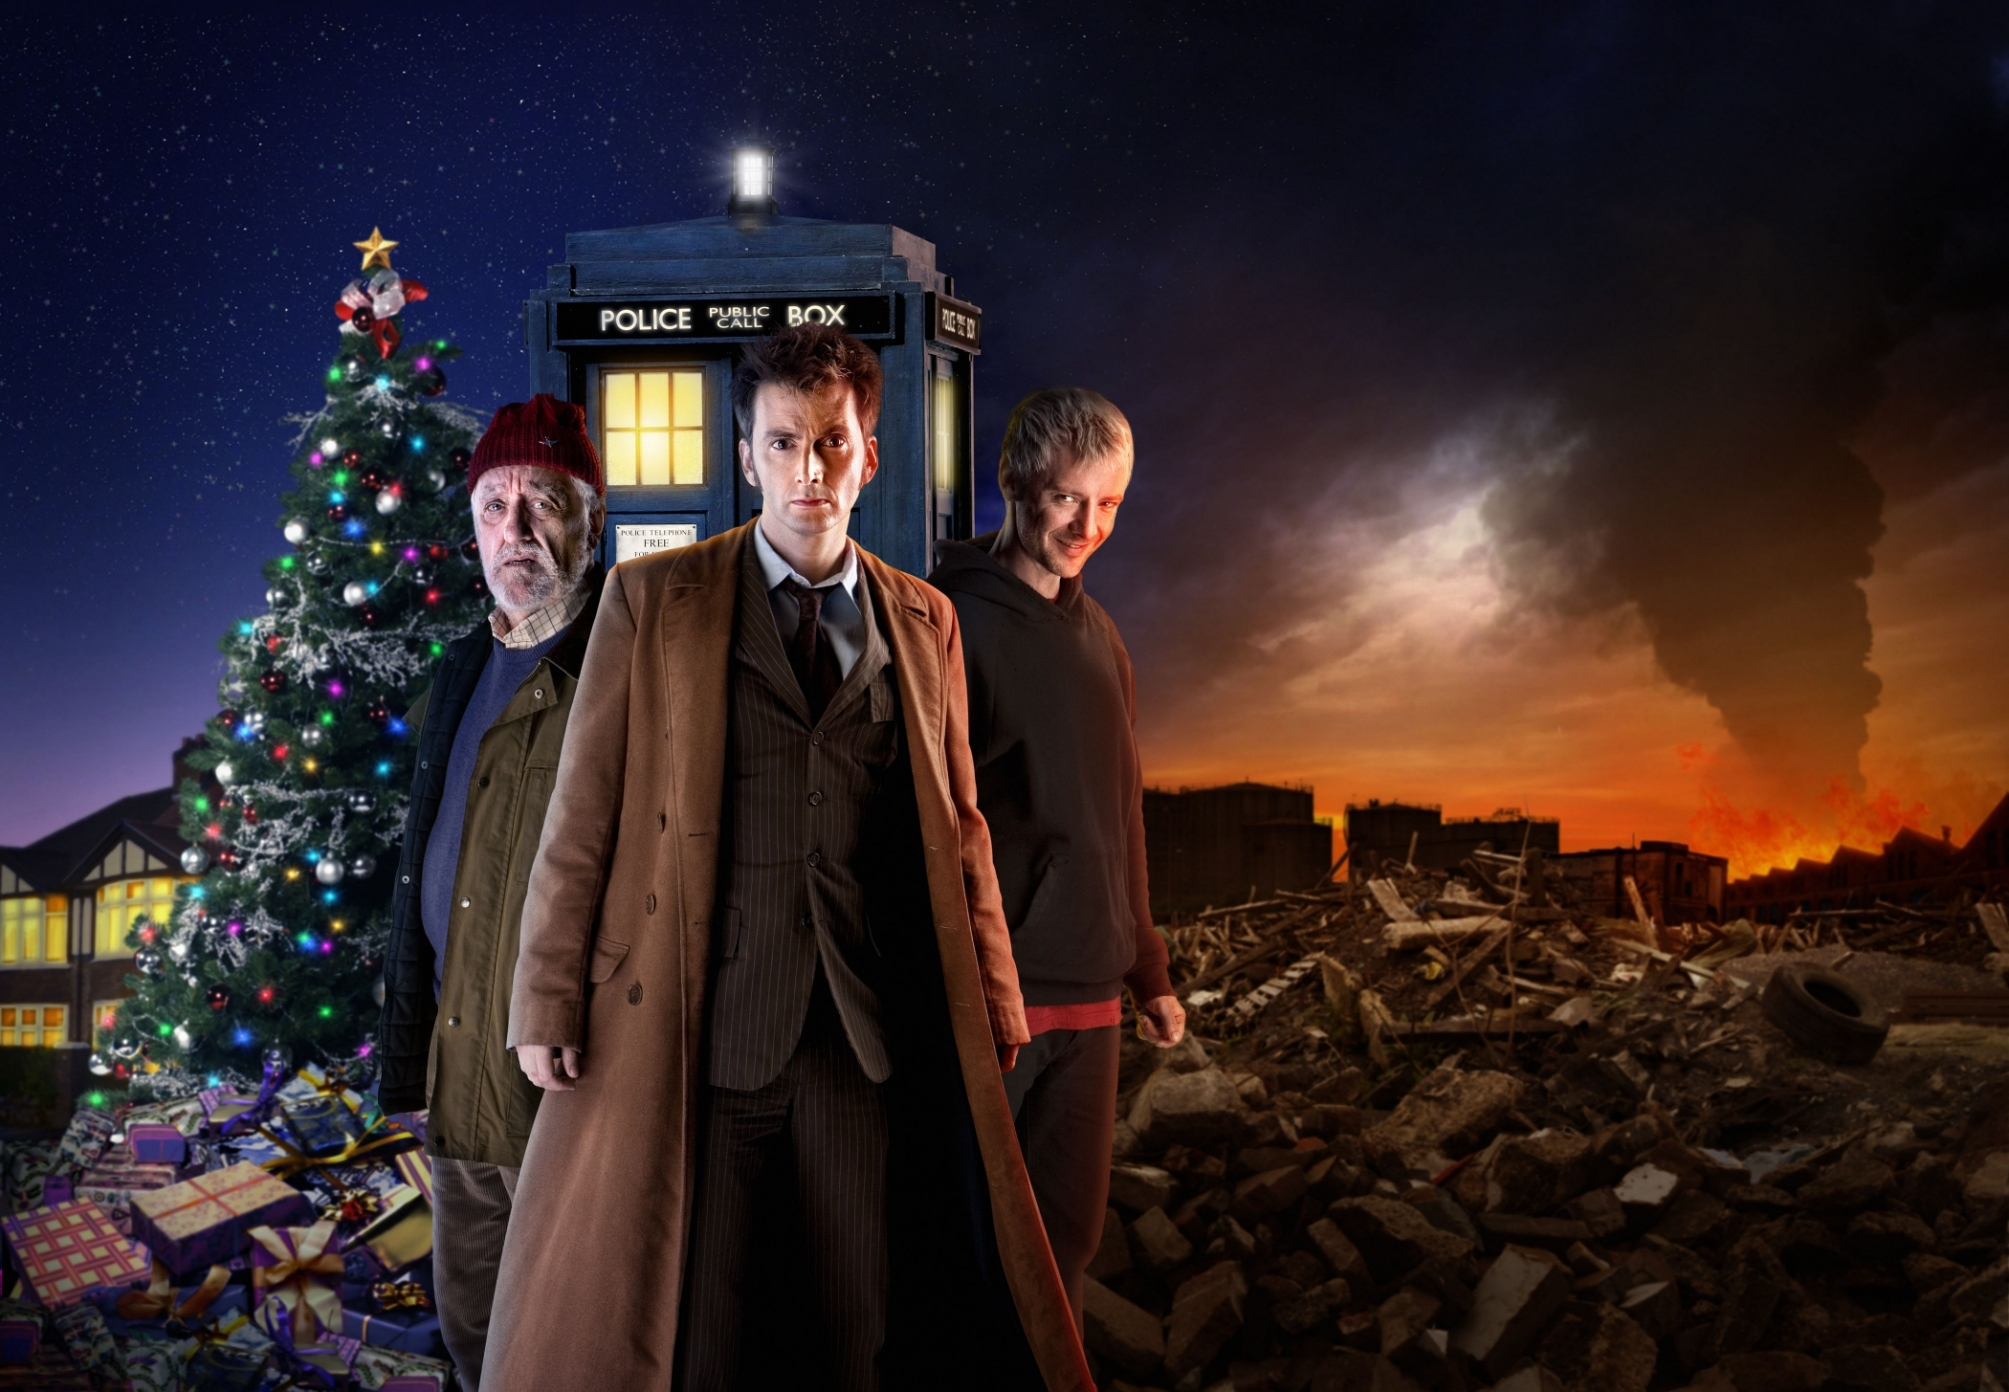 good looking doctor who bedroom wallpaper. The Master  Doctor images and HD wallpaper background photos